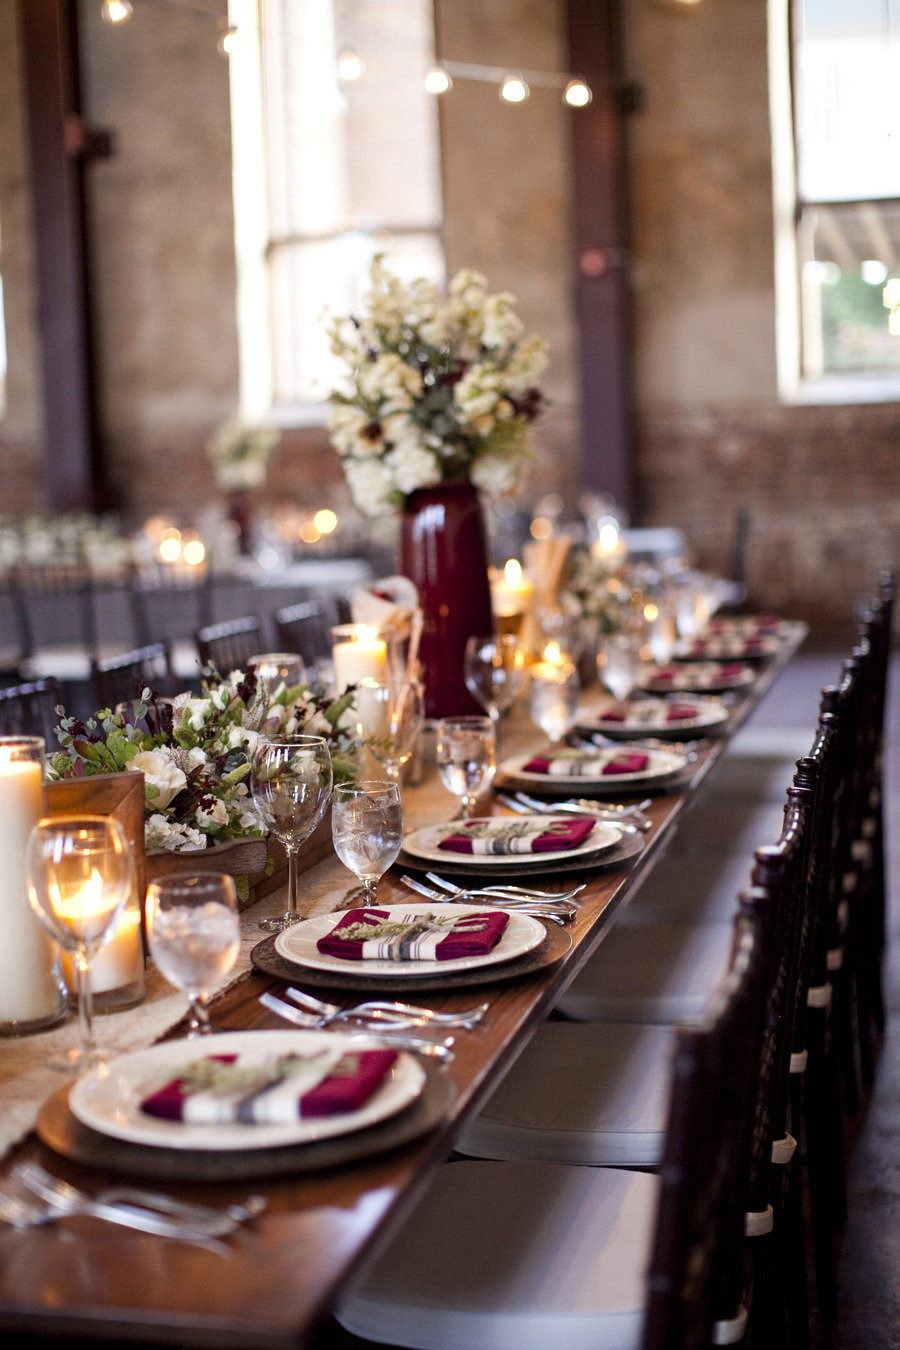 Wilmington wedding at the brooklyn arts center by millie holloman maroon themed wedding reception decorations with maroon vases and napkins with white floral accents for a maroon themed wedding junglespirit Images